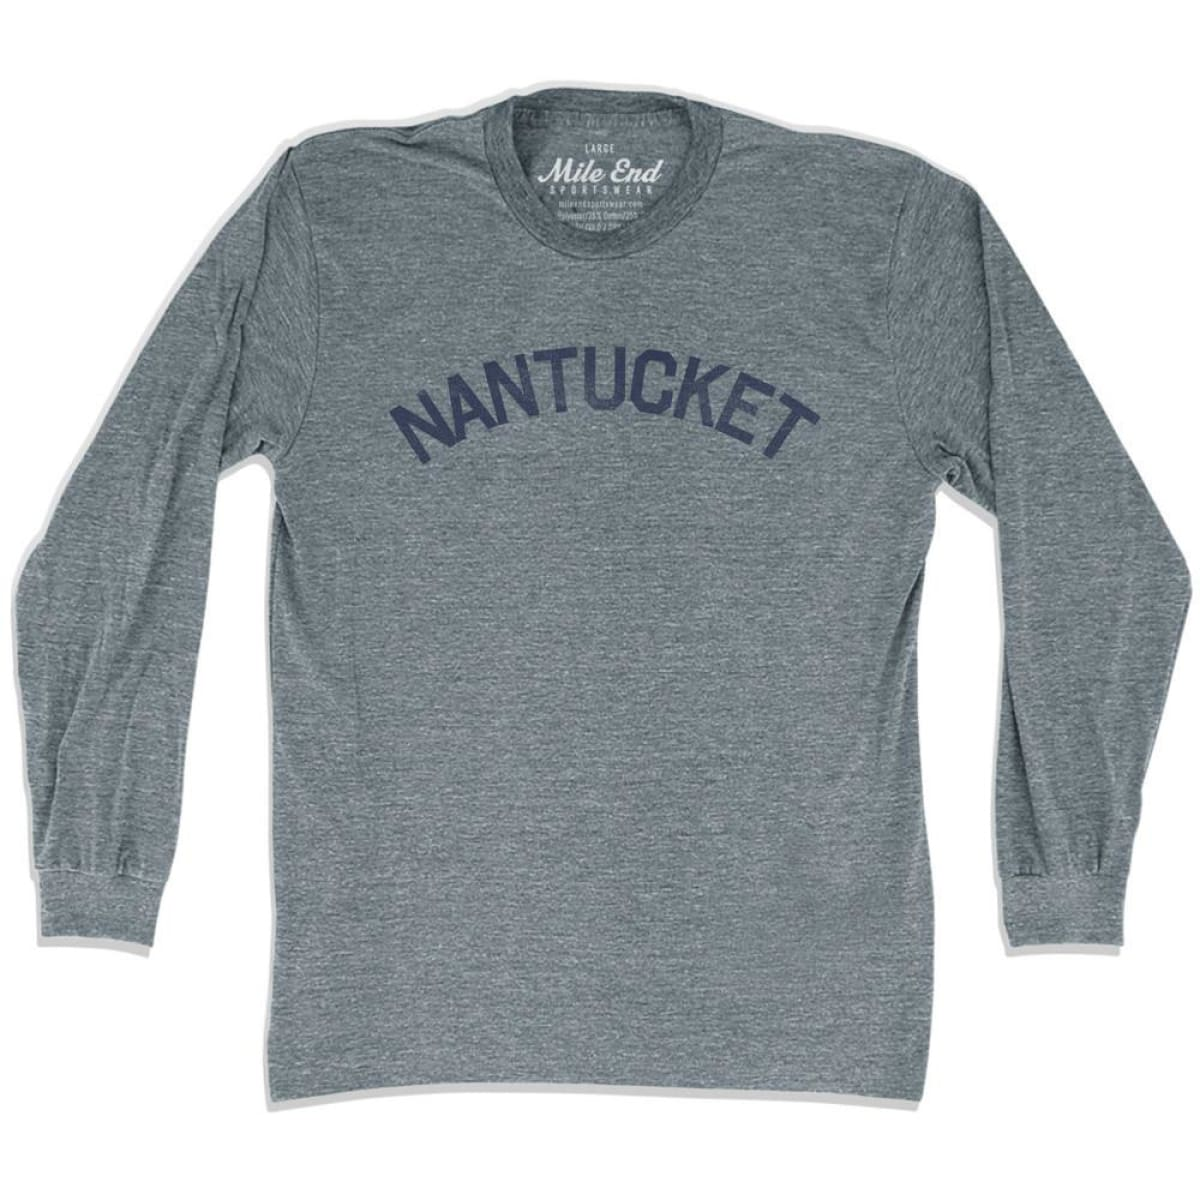 Nantucket City Vintage Long Sleeve T-Shirt - Athletic Grey / Adult X-Small - Mile End City